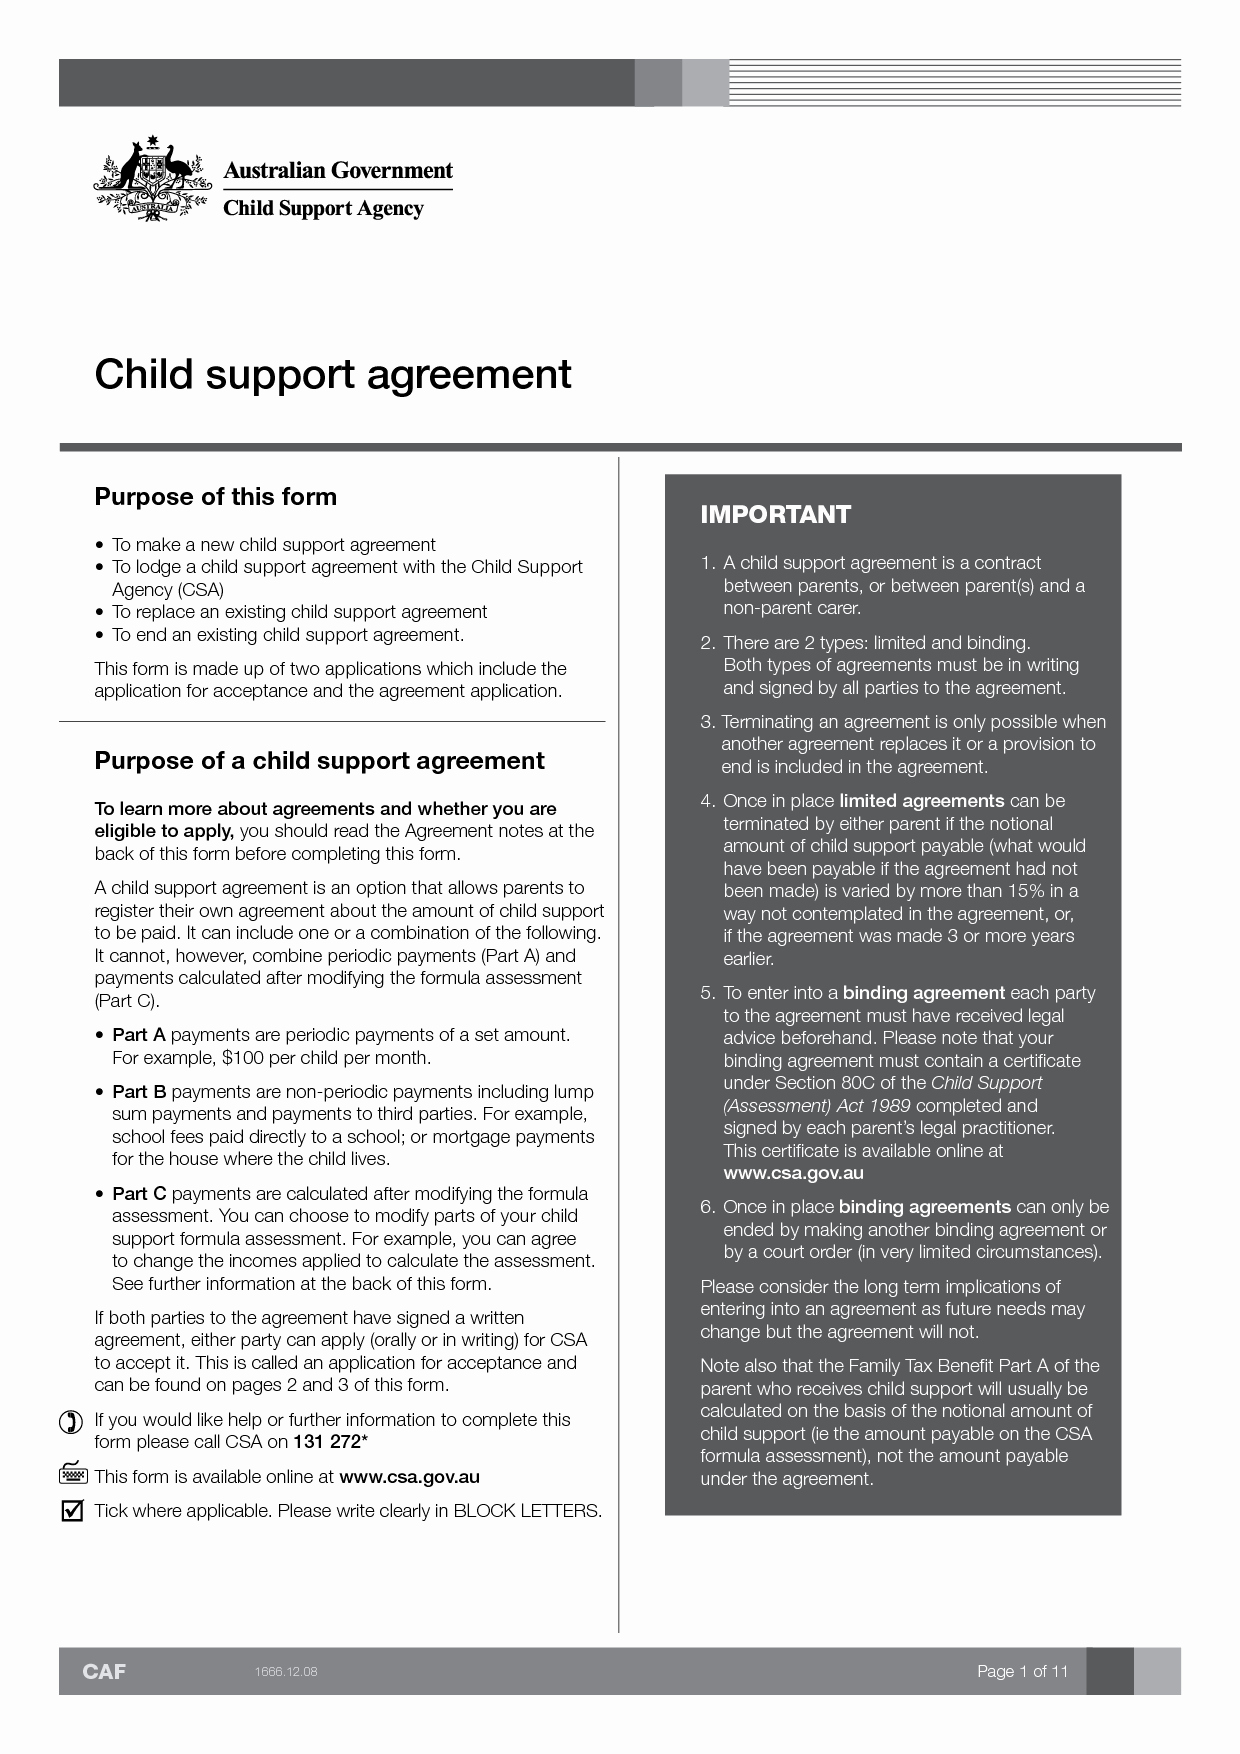 Private Child Support Agreement Template Unique Child Support Agreement Between Parents form Free